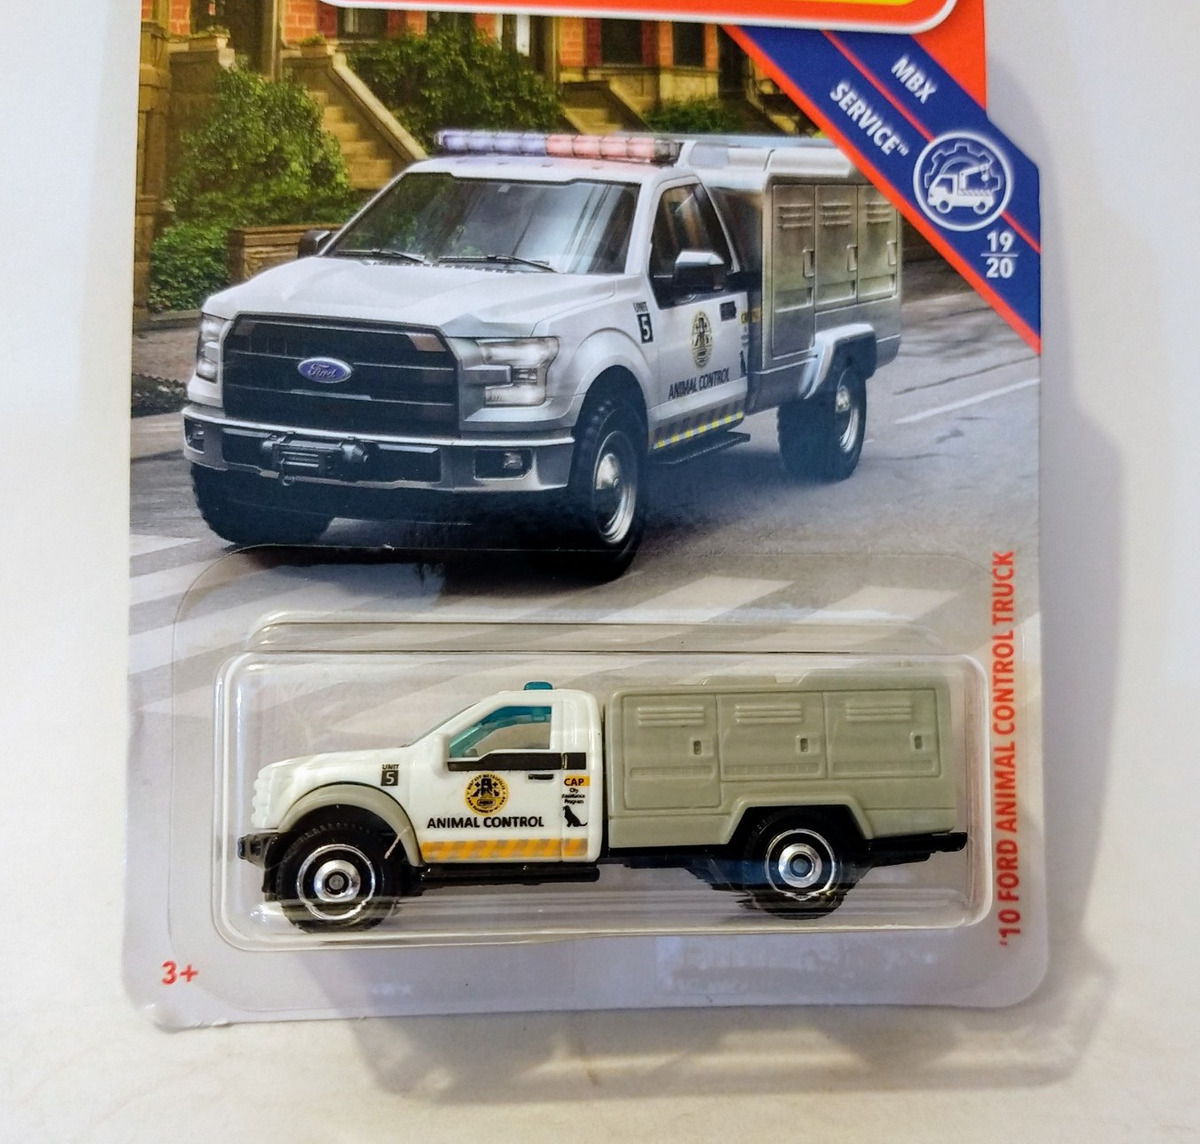 https://http2.mlstatic.com/10-ford-animal-control-truck-matchbox-D_NQ_NP_674964-MLM29931982478_042019-F.jpg